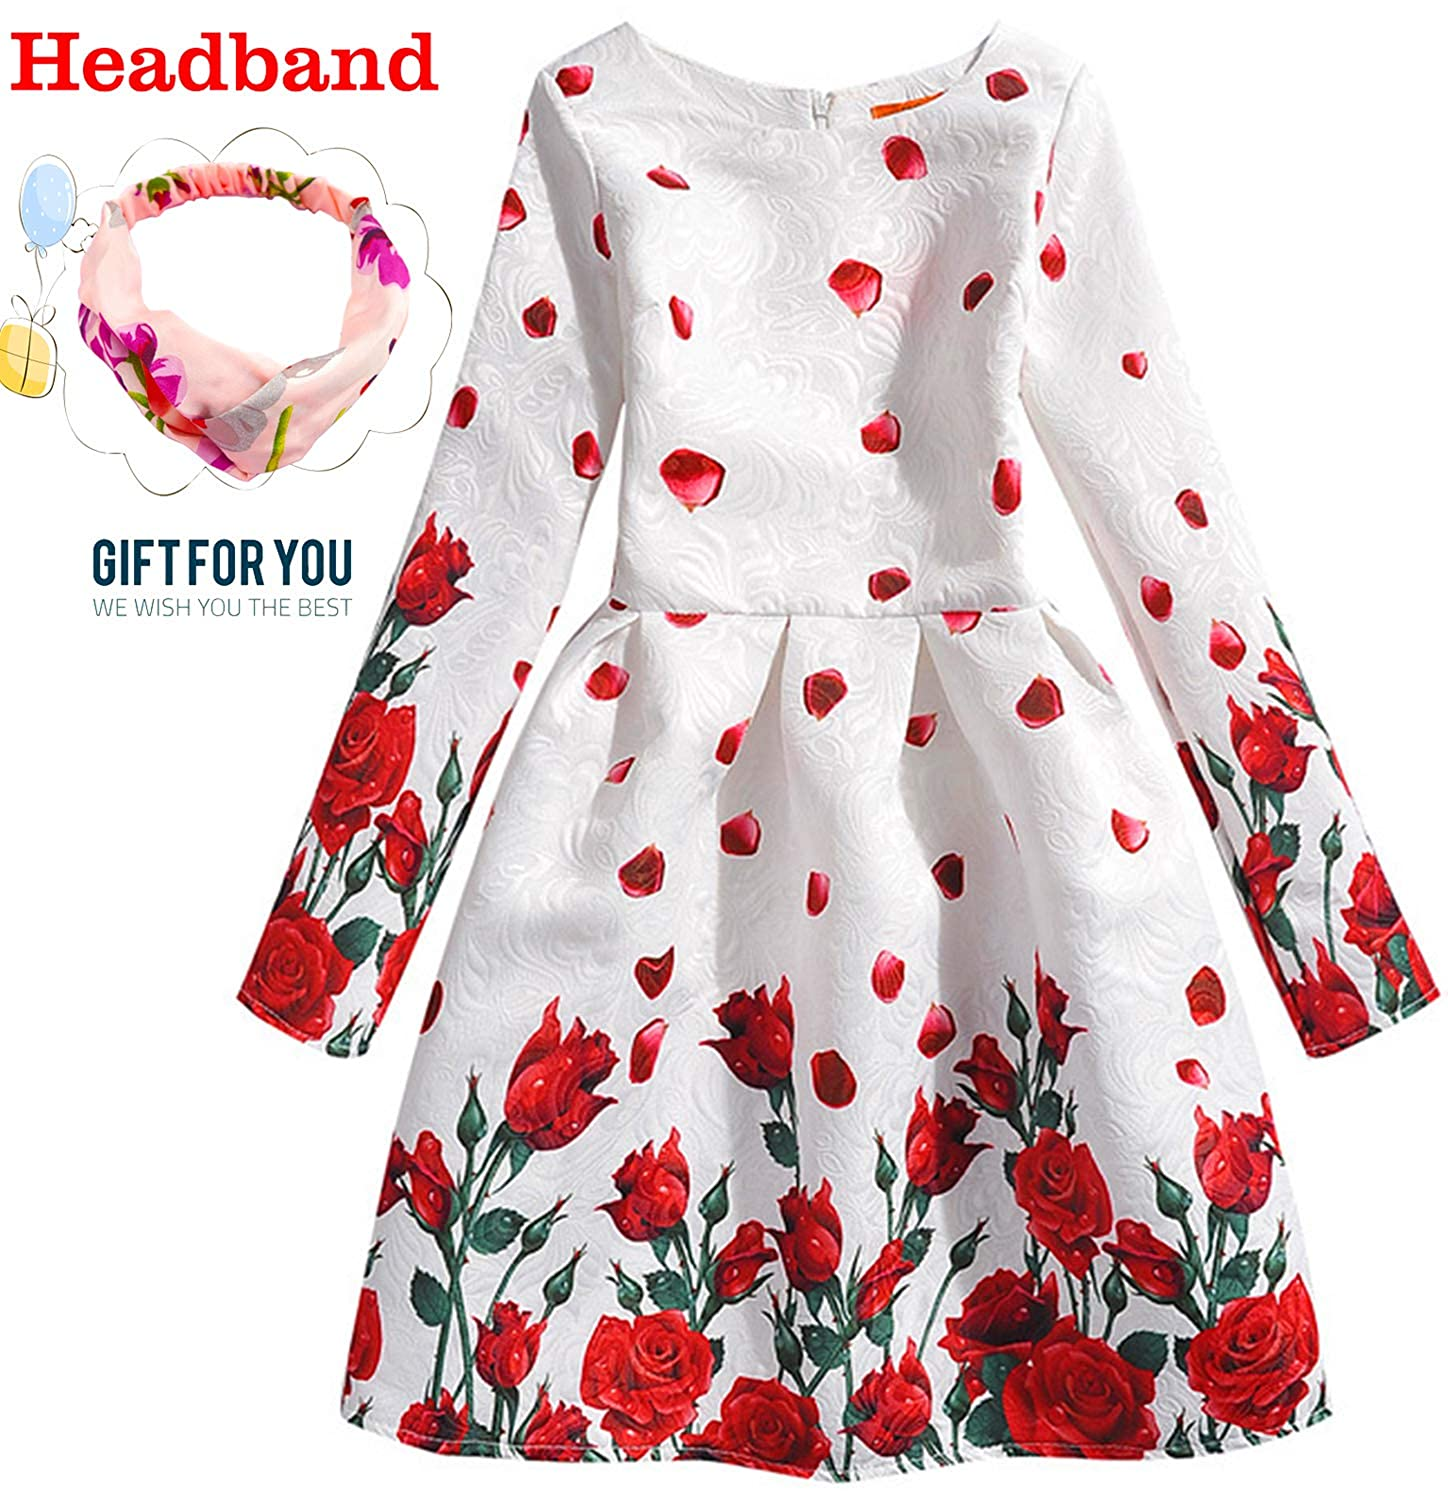 6204ded5 Package Include: 1* Floral dress+1*Fashion headband, Fit 4-12 years old  girls. ????96%Cotton + 4%Spandex, Comfortable hand feeling, High quality  fabric made ...